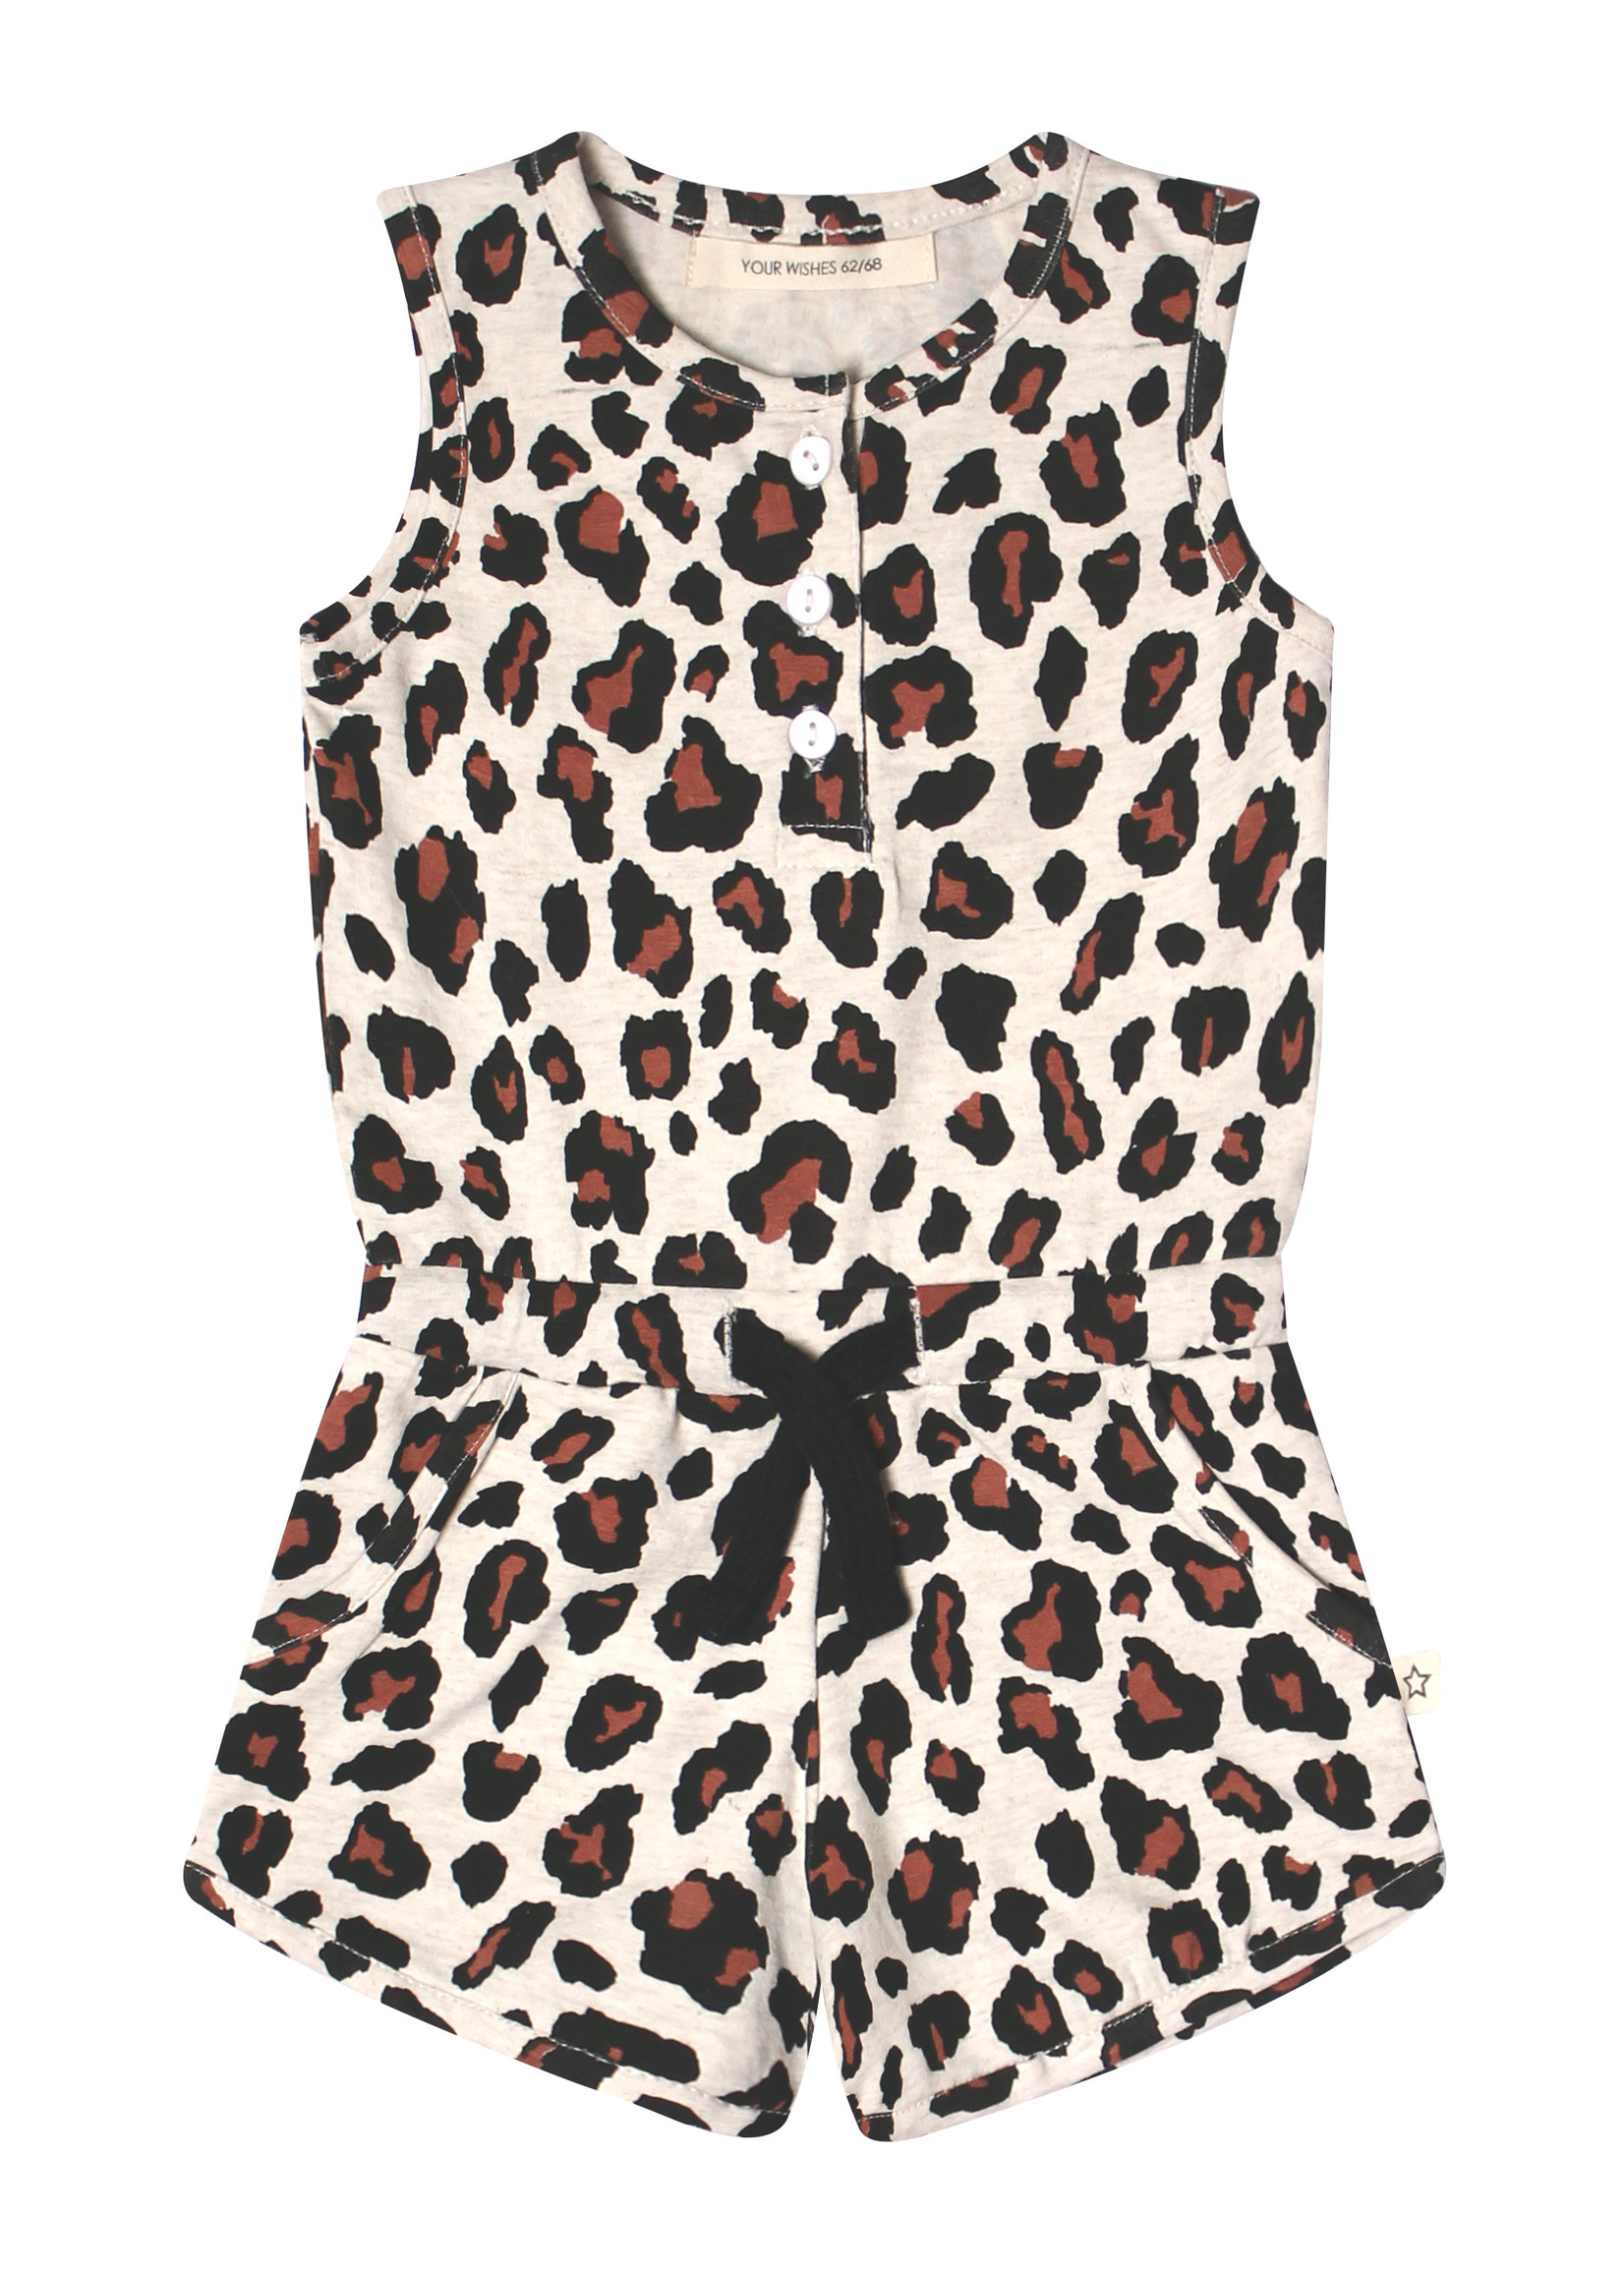 Your Wishes YW - Leopard | Racerback Jumpsuit